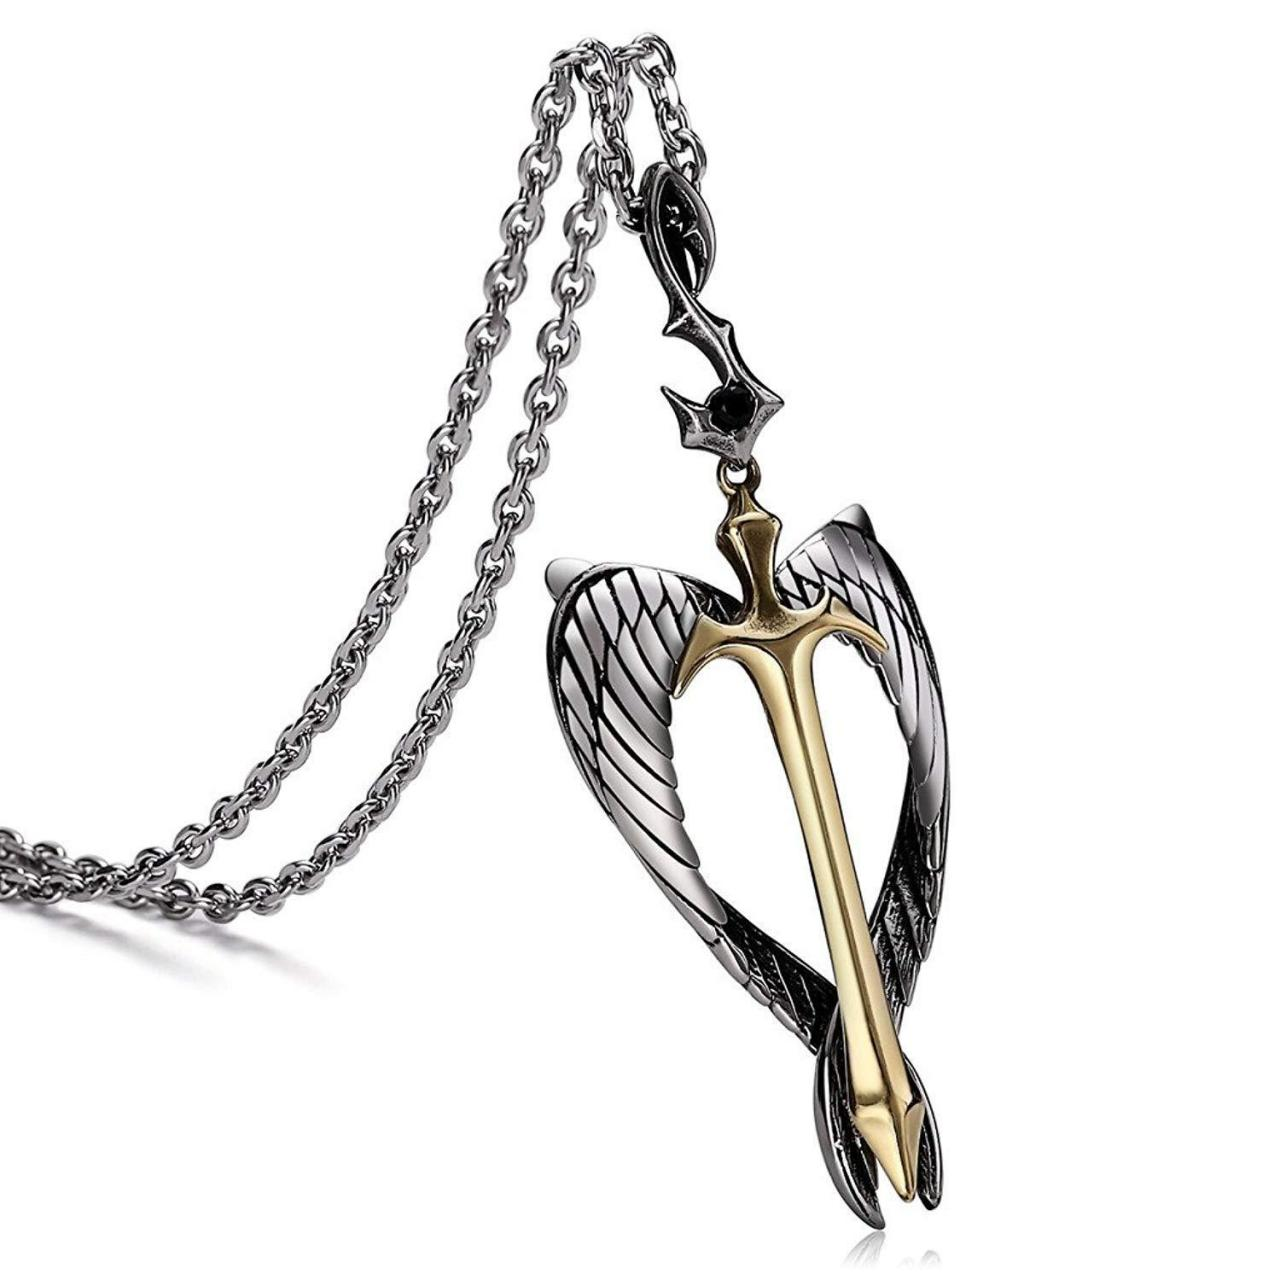 2018 Discount Aienid Cr el Angel Wing Sword Pendant for Men Chain 93438 Manufactures